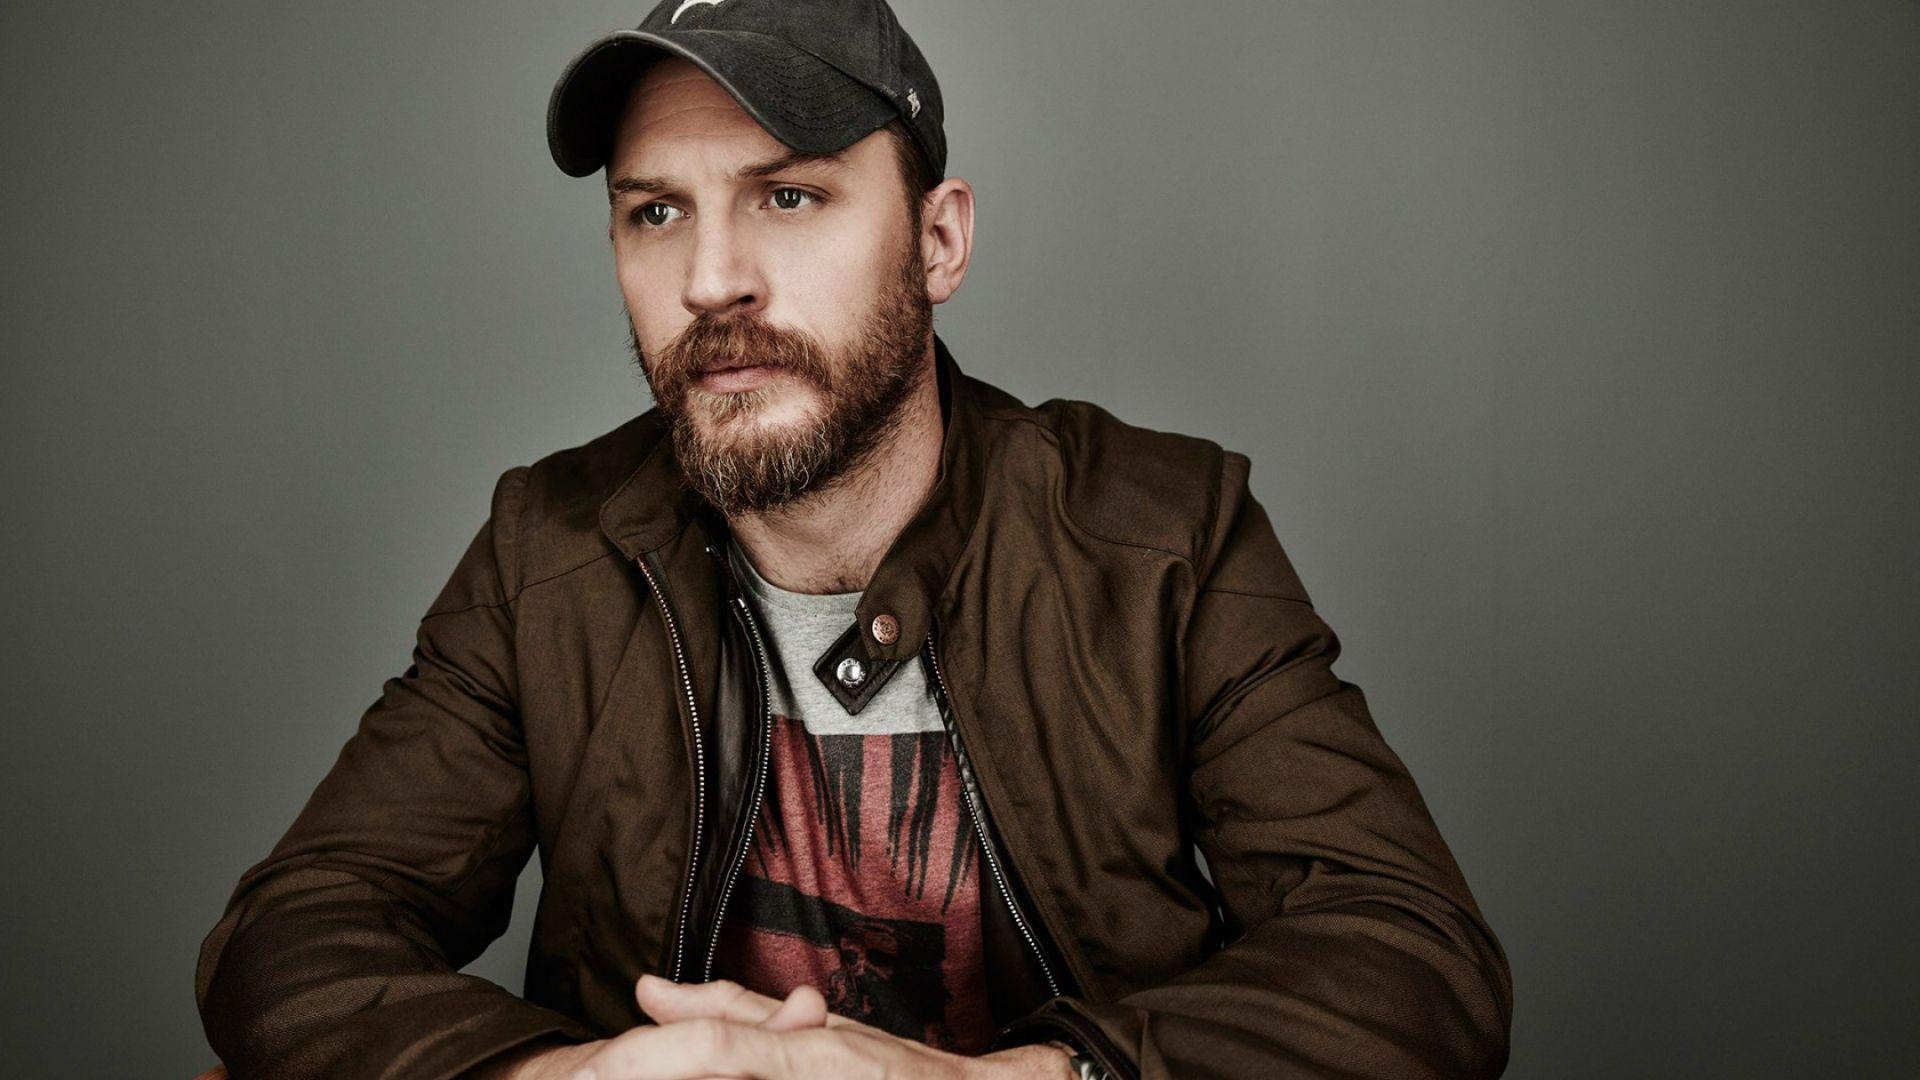 Full HD 1080p Tom hardy Wallpapers HD, Desktop Backgrounds ...